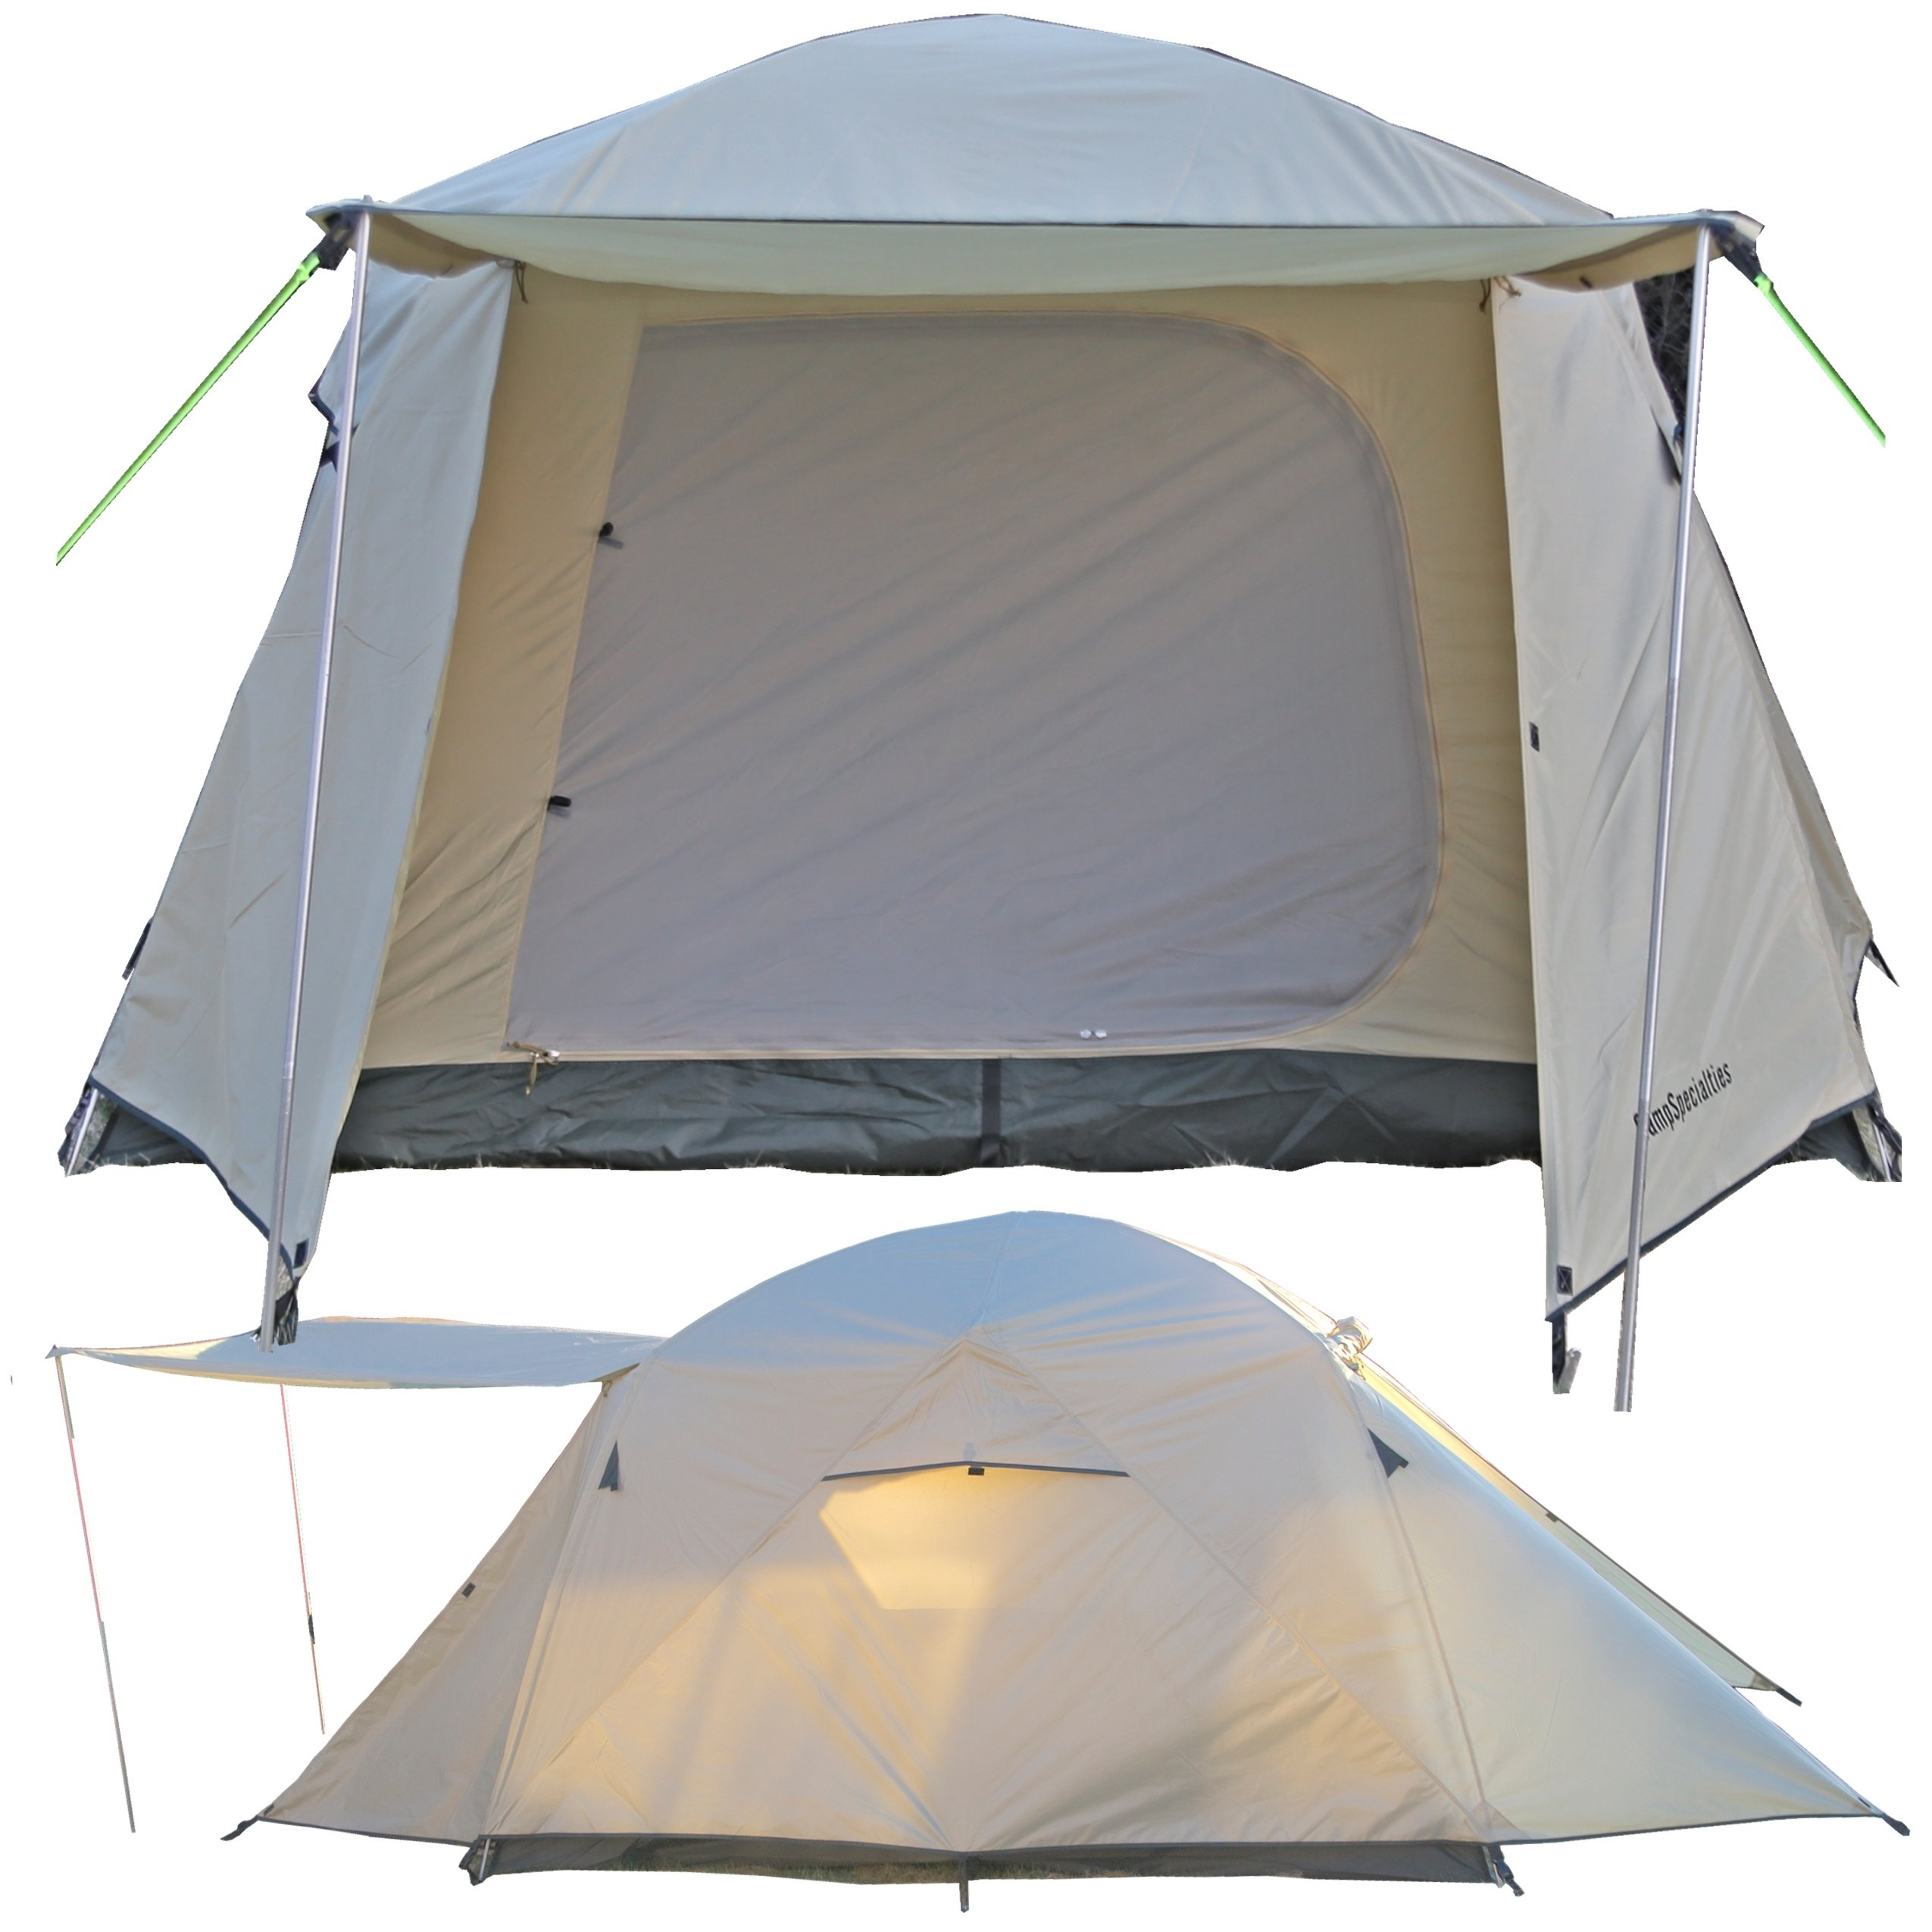 Camp Time Expedition Tent, Fast set-up, 100 square feet including vestibules, floor liner, awning poles, 7001-T6 aluminum, Designed for your cots-stools-tables,. by Camp Specialties (Image #1)